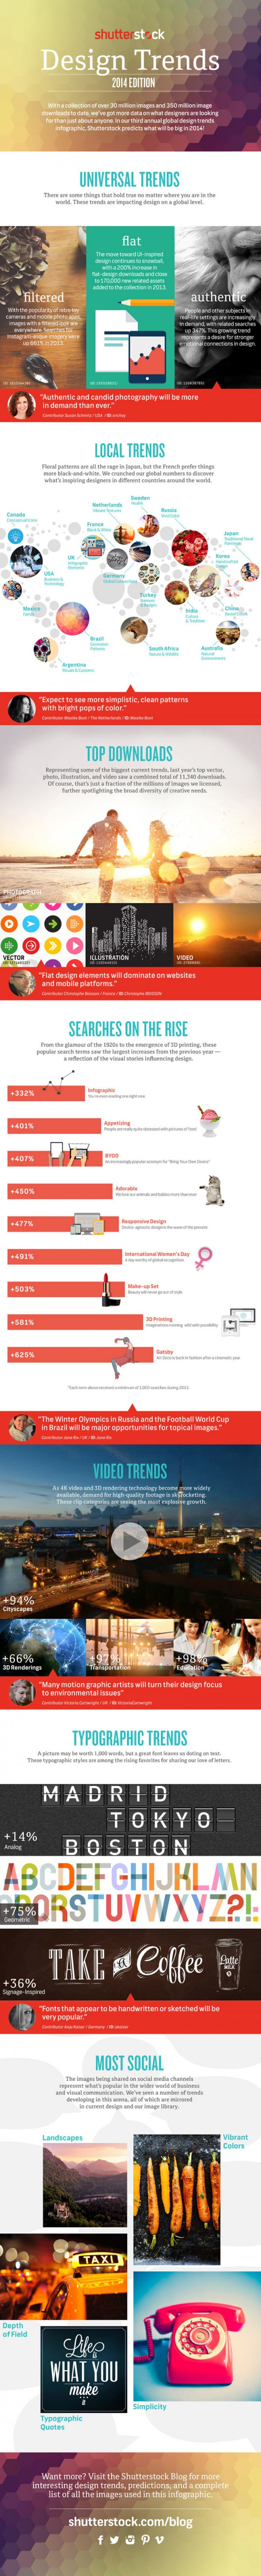 shutterstock-digital-design-trends-infographic